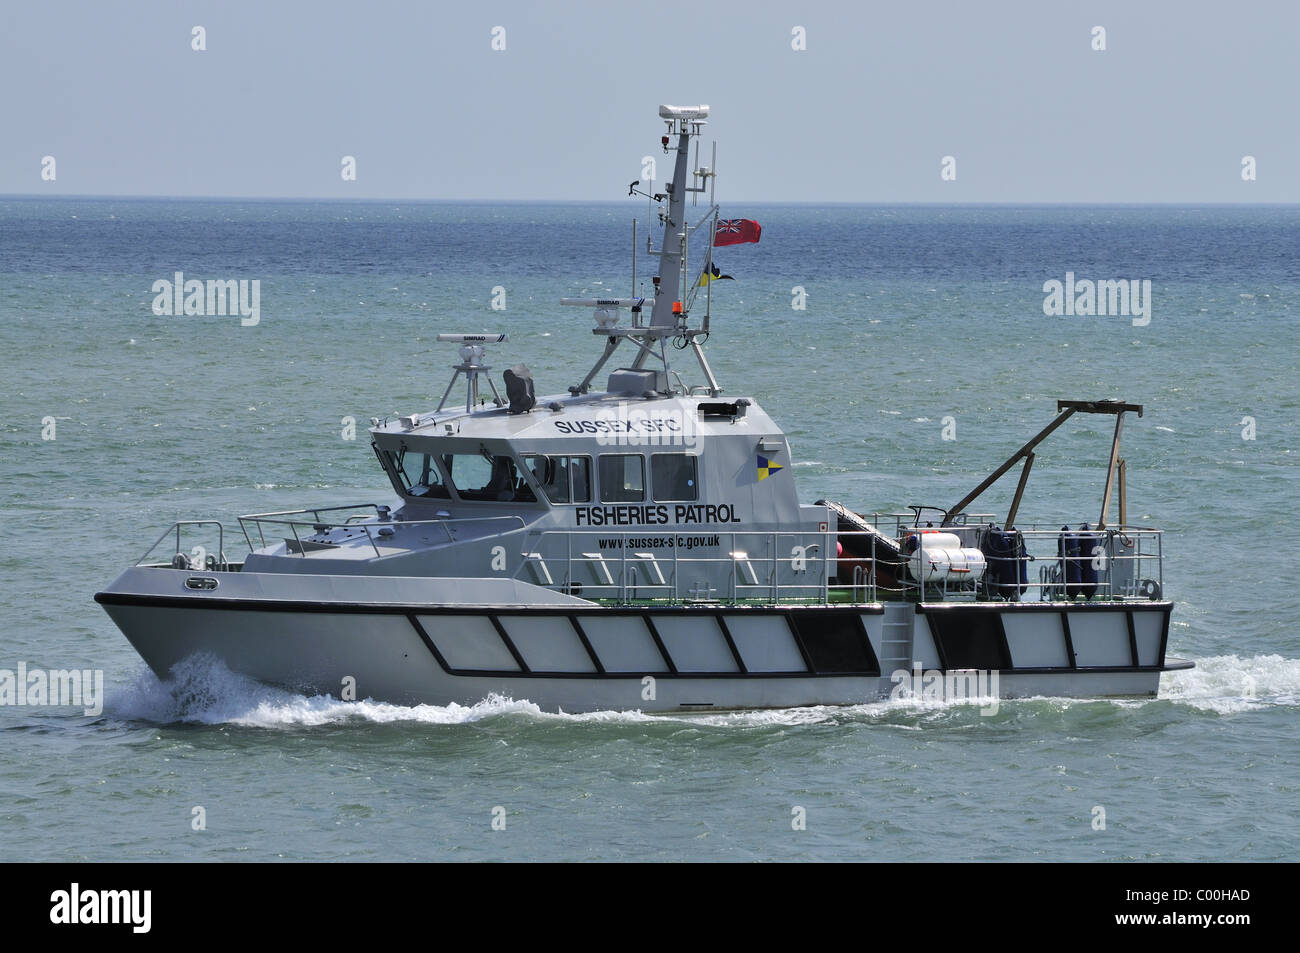 Fisheries Patrol Vessel Entering port Sea Stock Photo